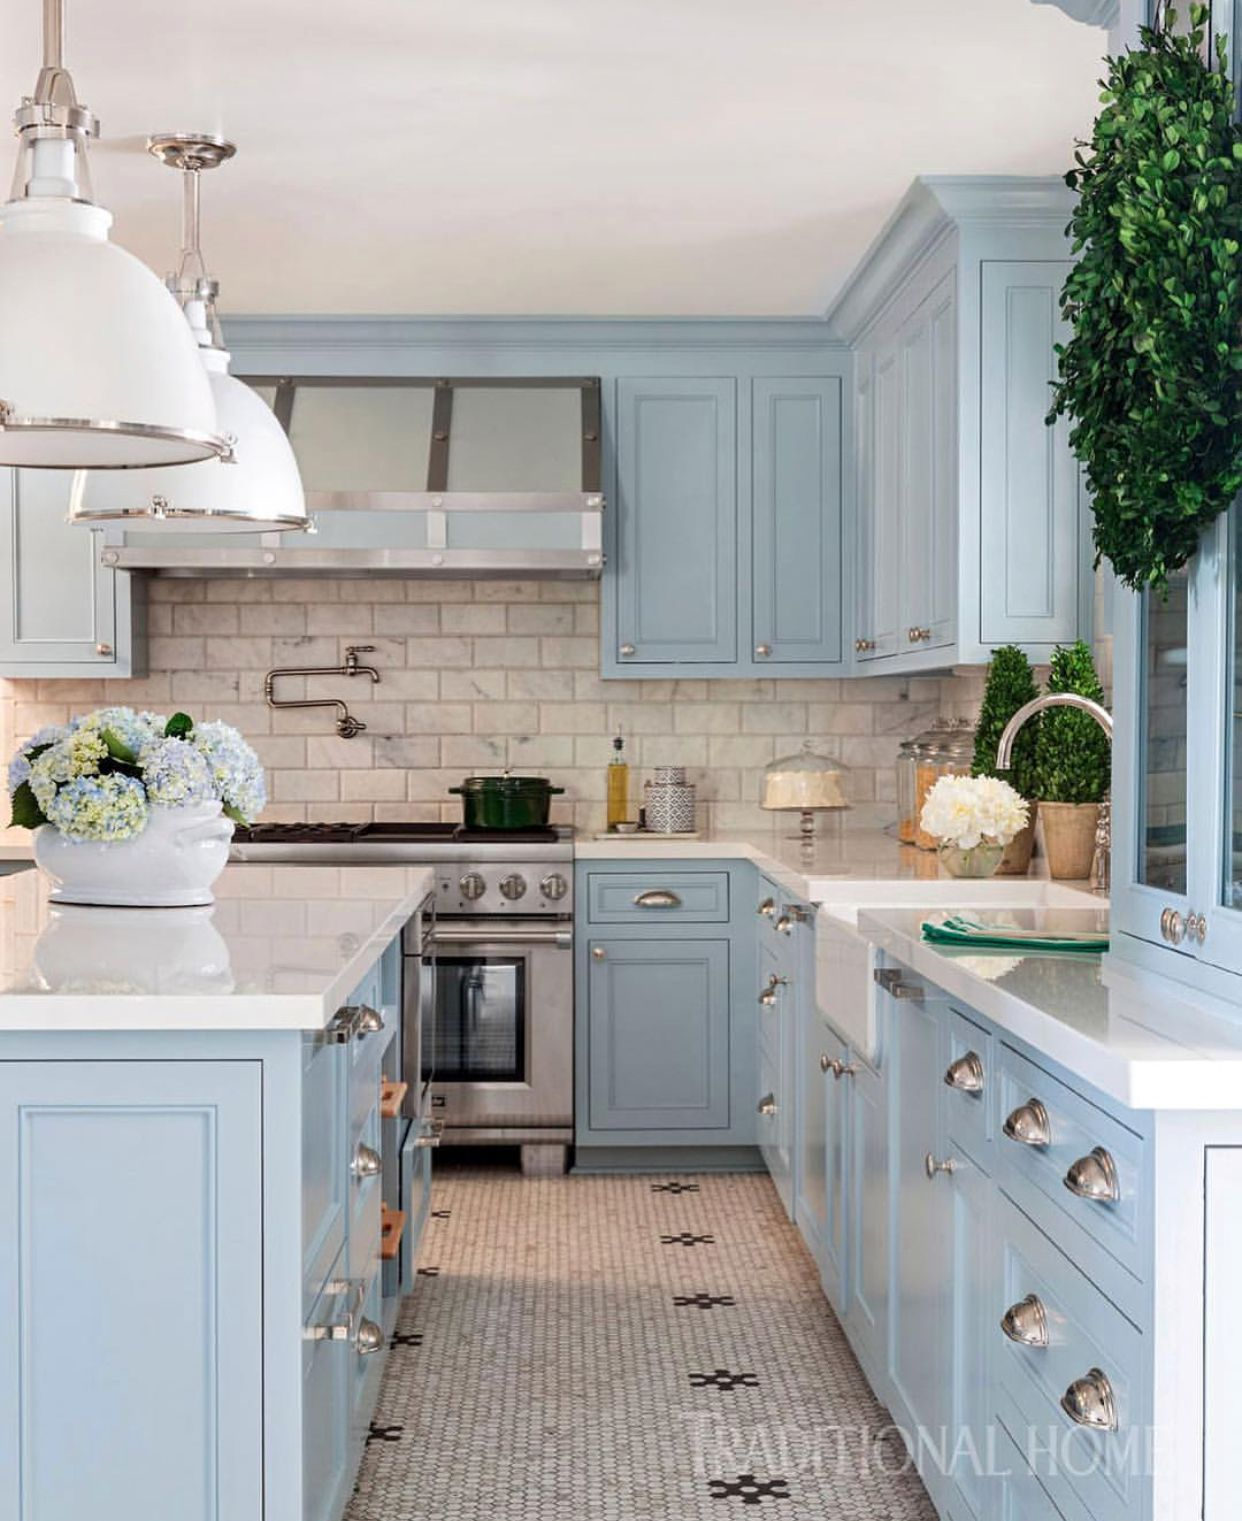 Pin by Luke on Cozinha Rose | Pinterest | Kitchens, Ideas para and ...